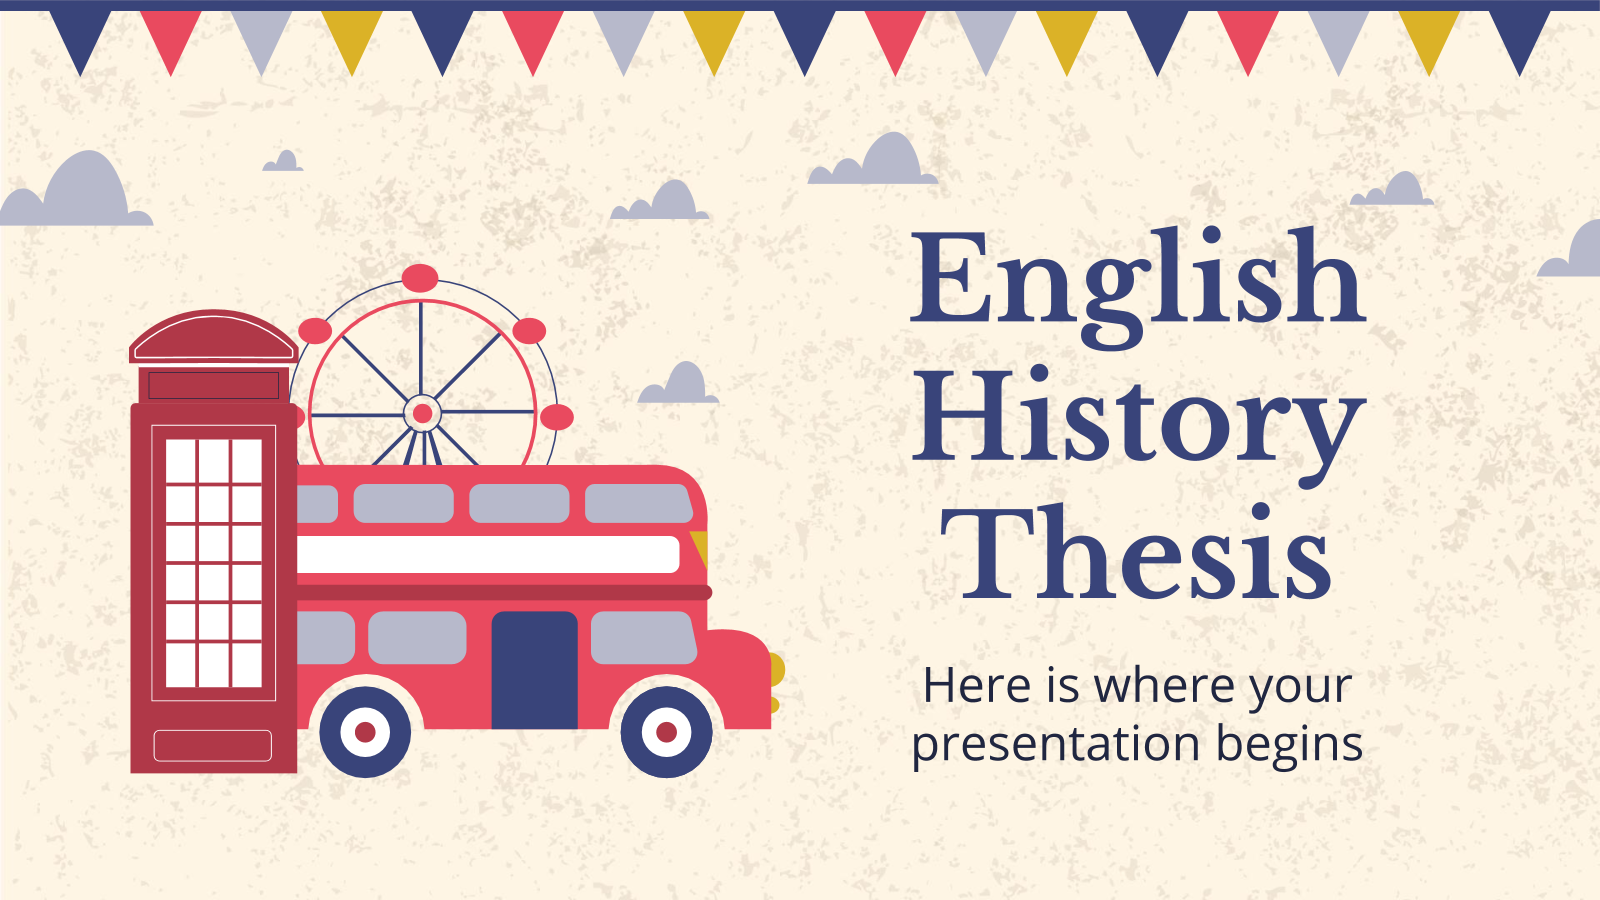 English History Thesis presentation template